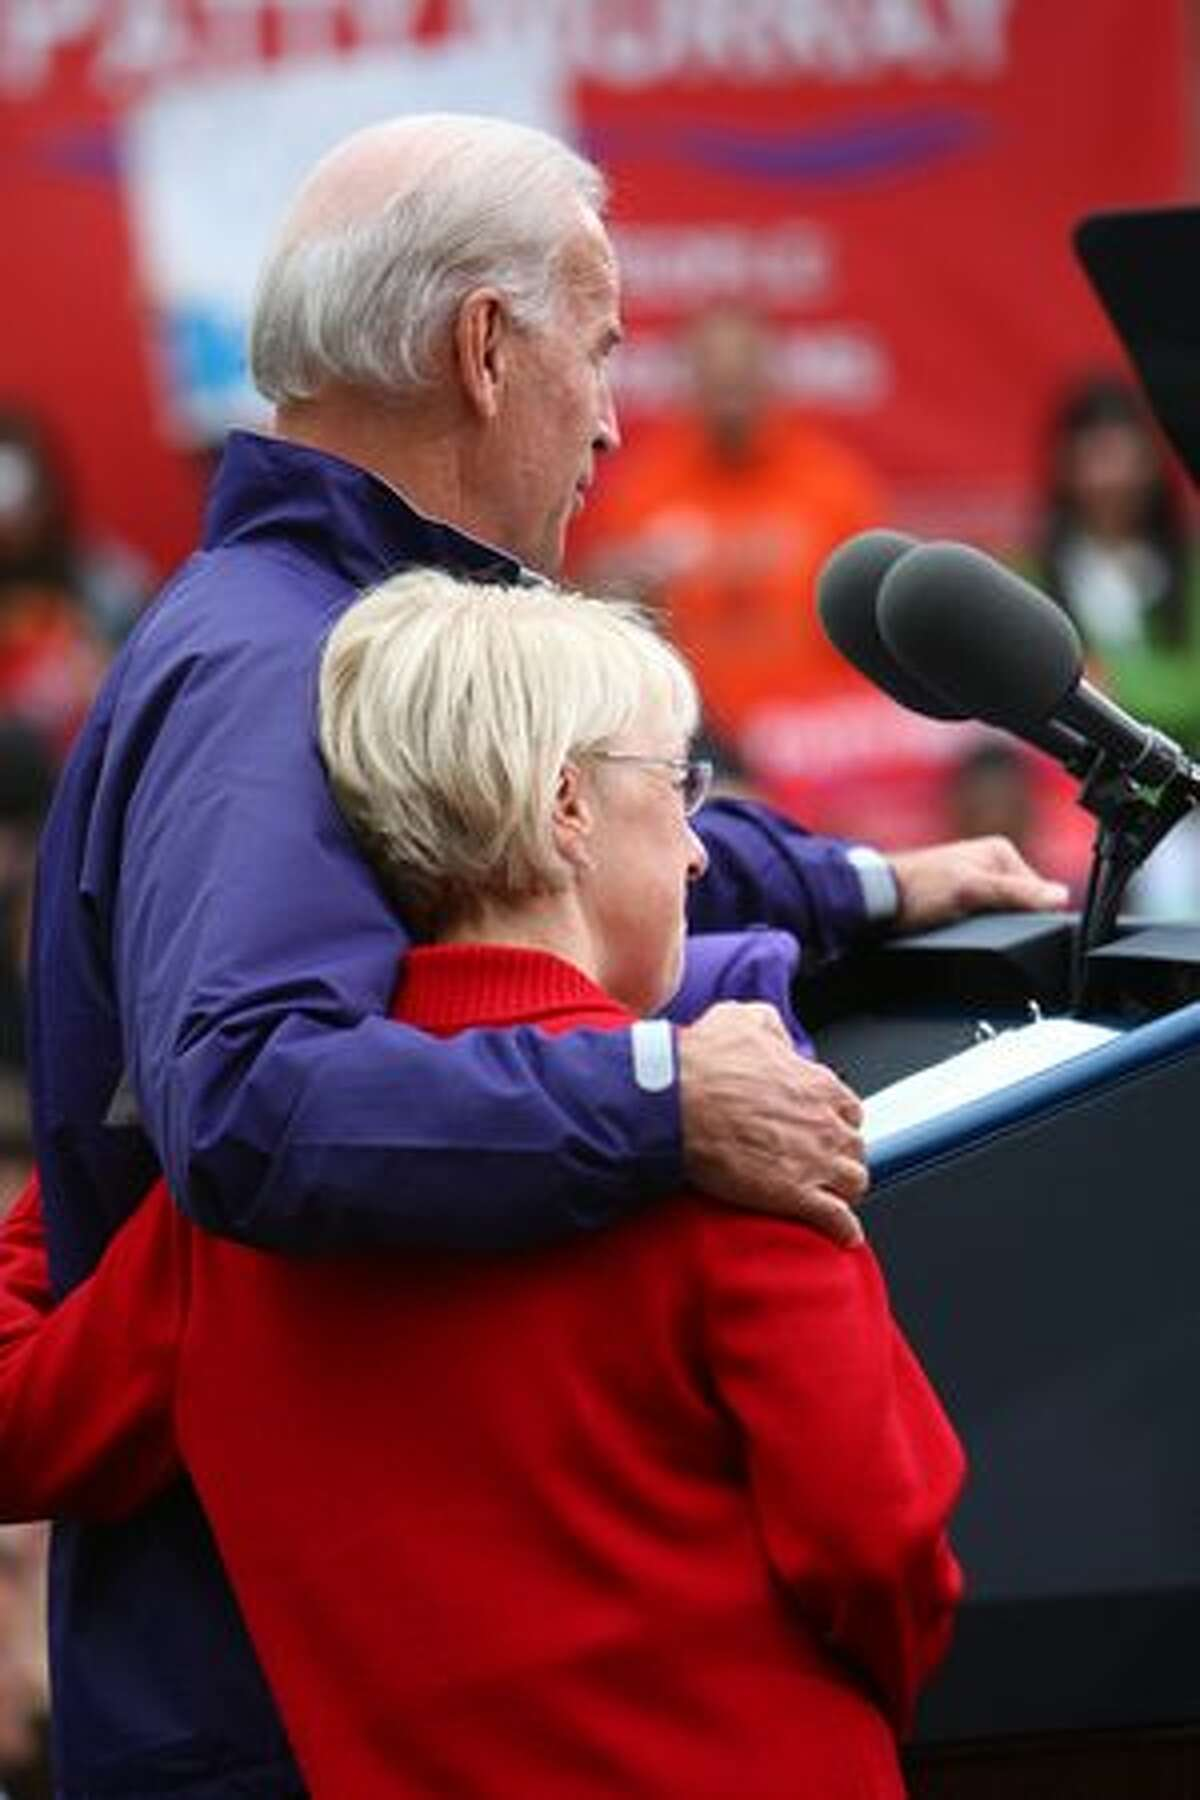 Vice President Joe Biden embraces U.S. Senator Patty Murray in front of a crowd of supporters on Friday.